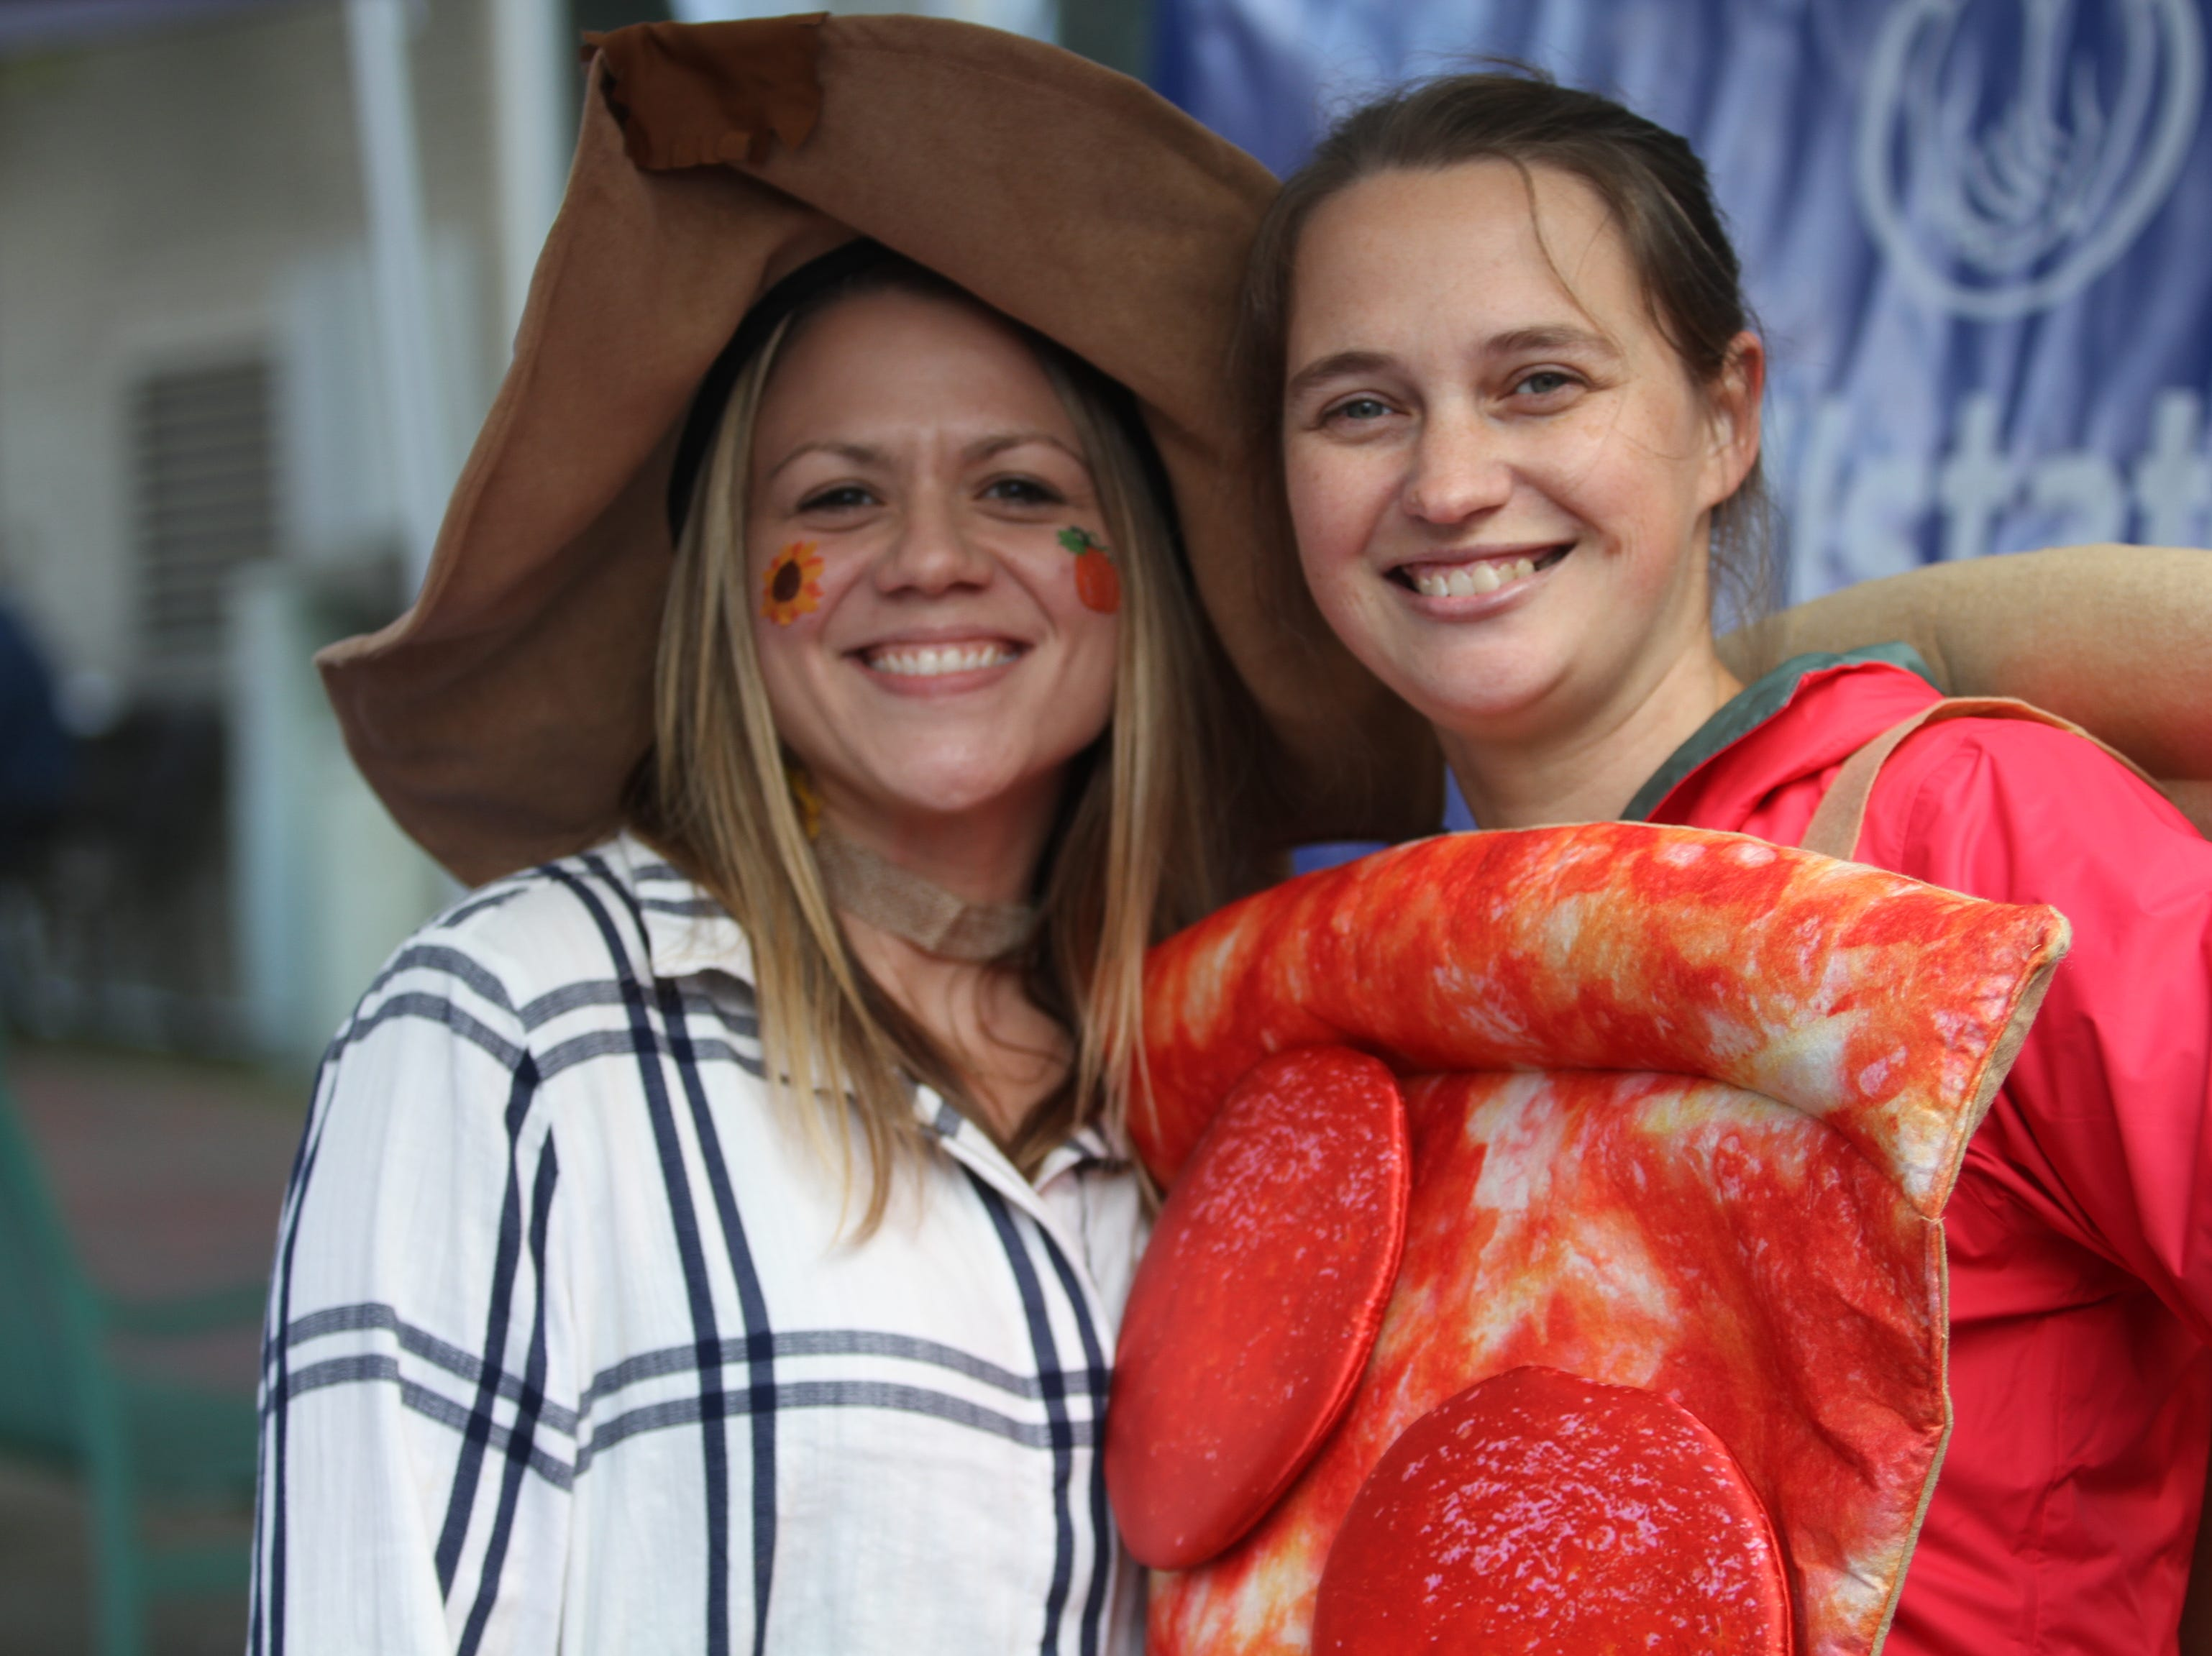 Alexis Goines and Jami Joynor  downtown Saturday, October 27, 2018 for Clarksville's annual Fright on Franklin.